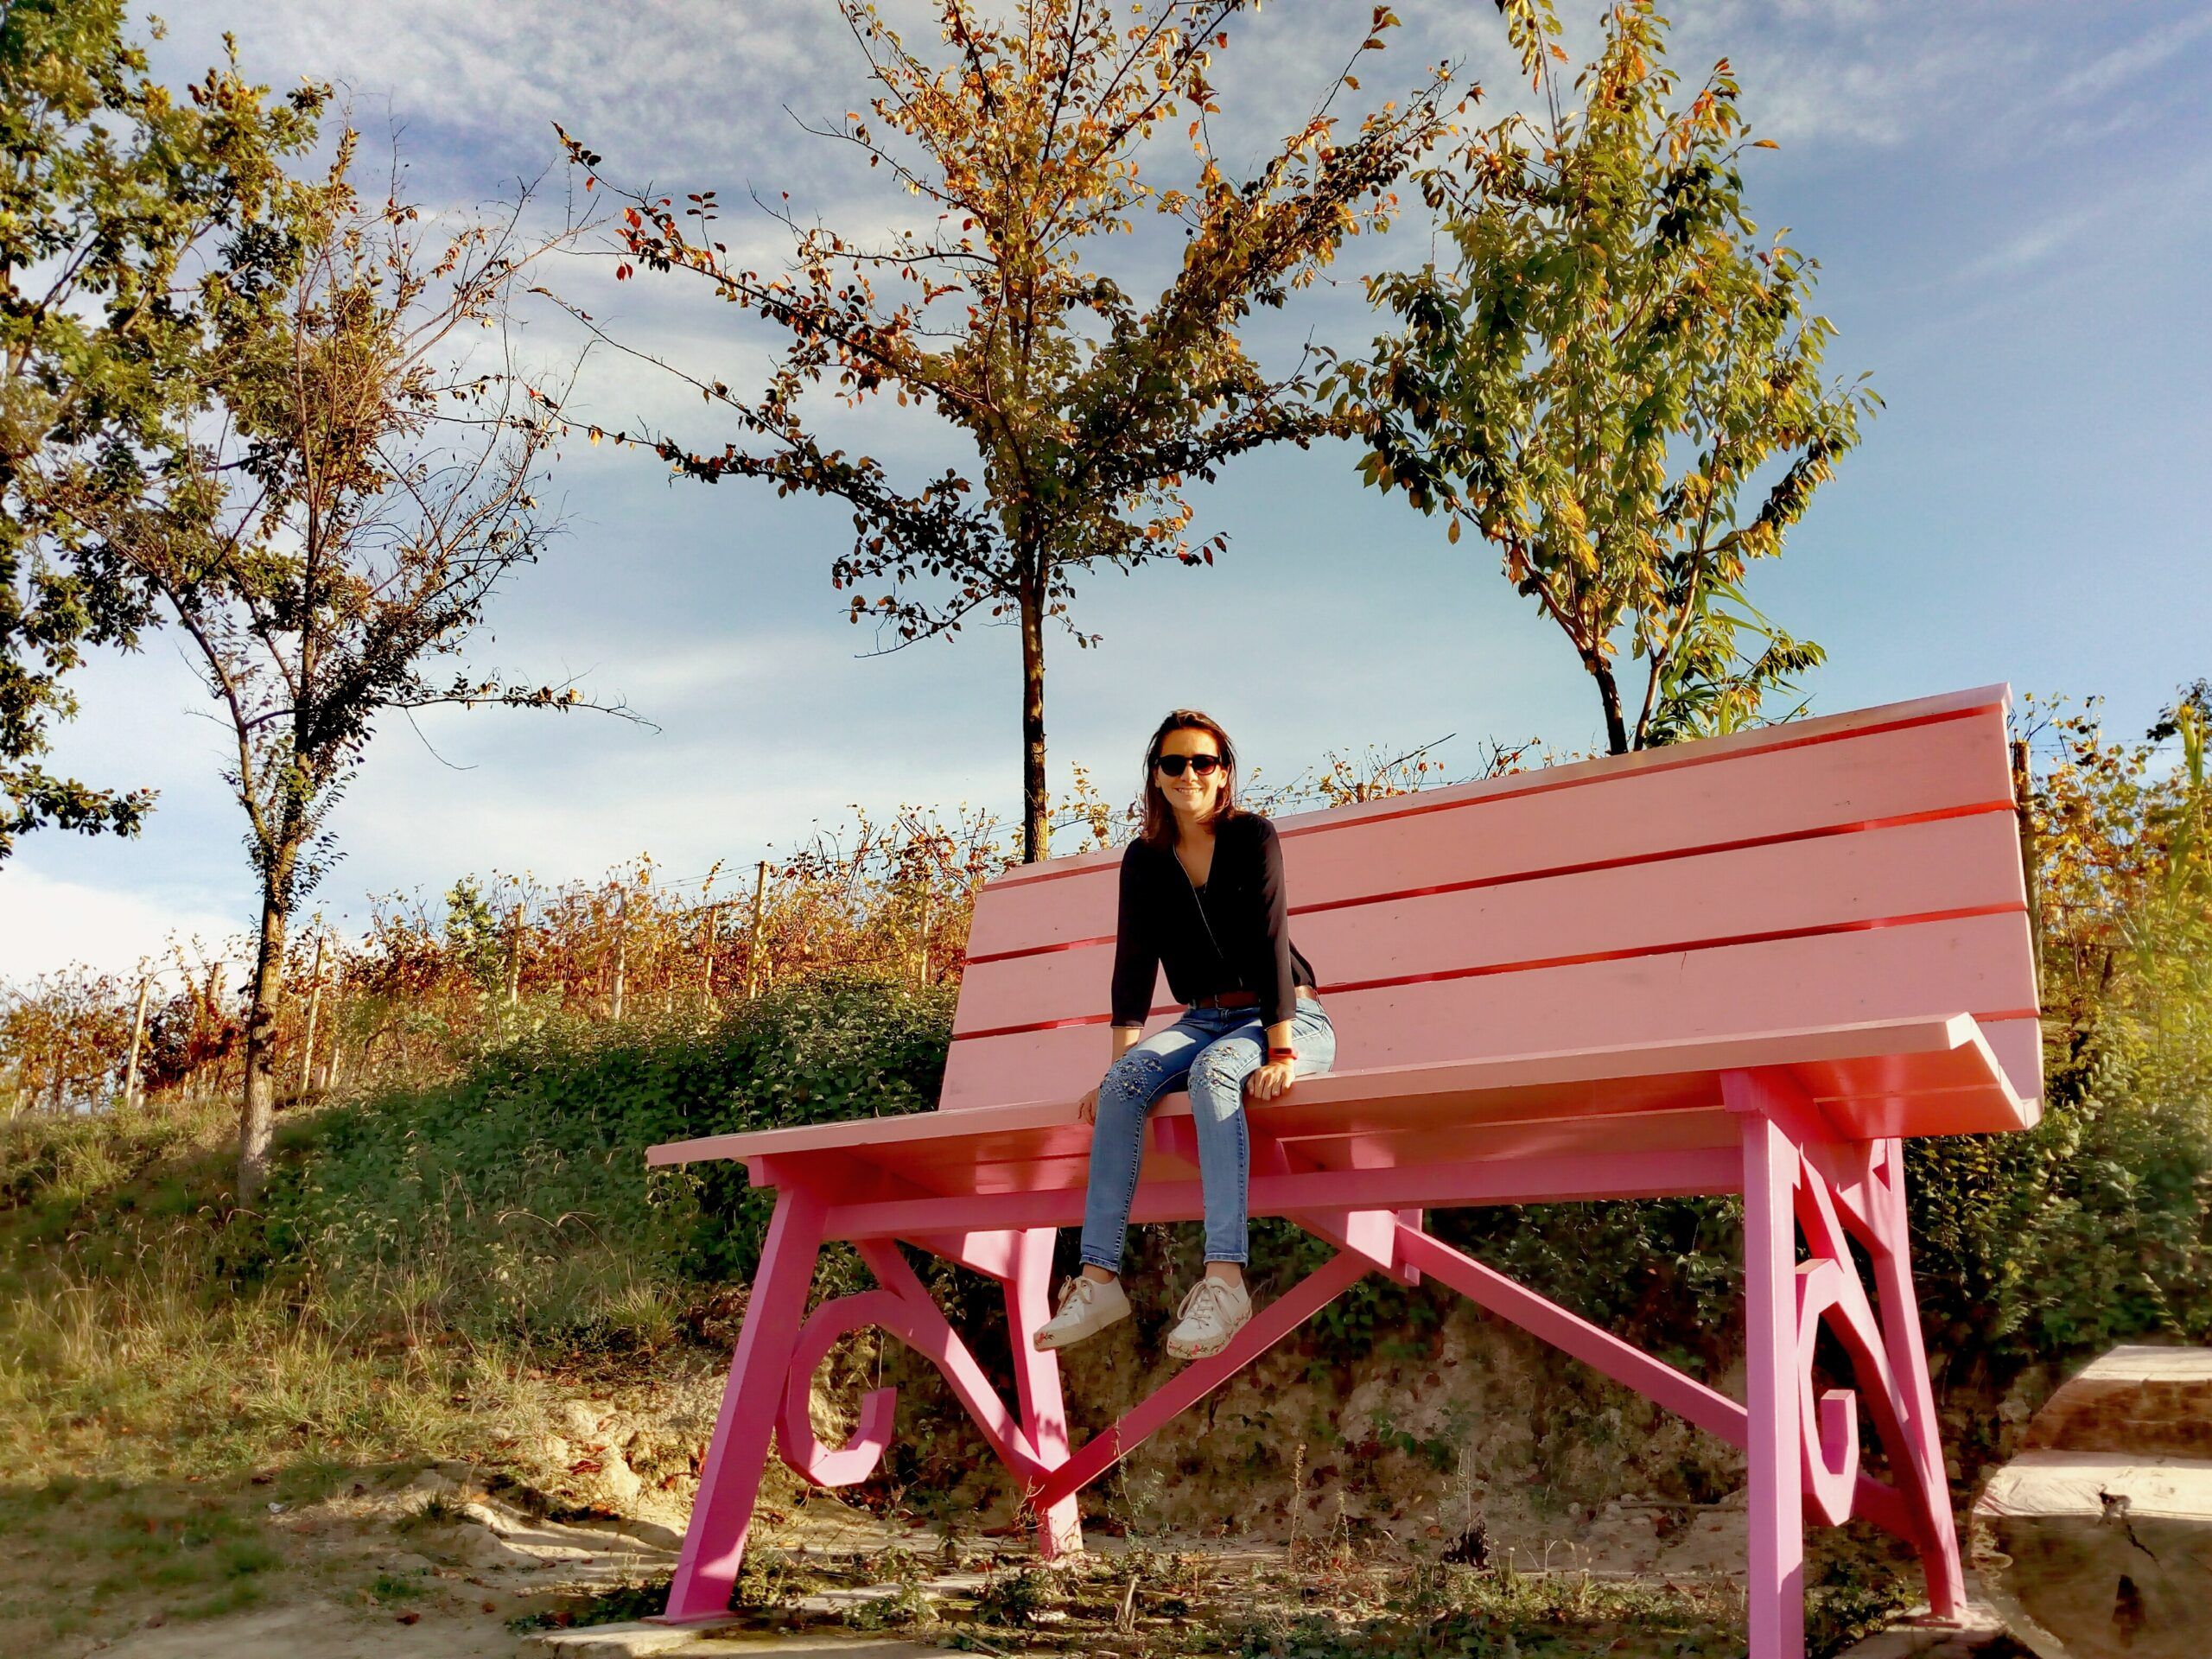 Big Bench n.47, Canale (CN)